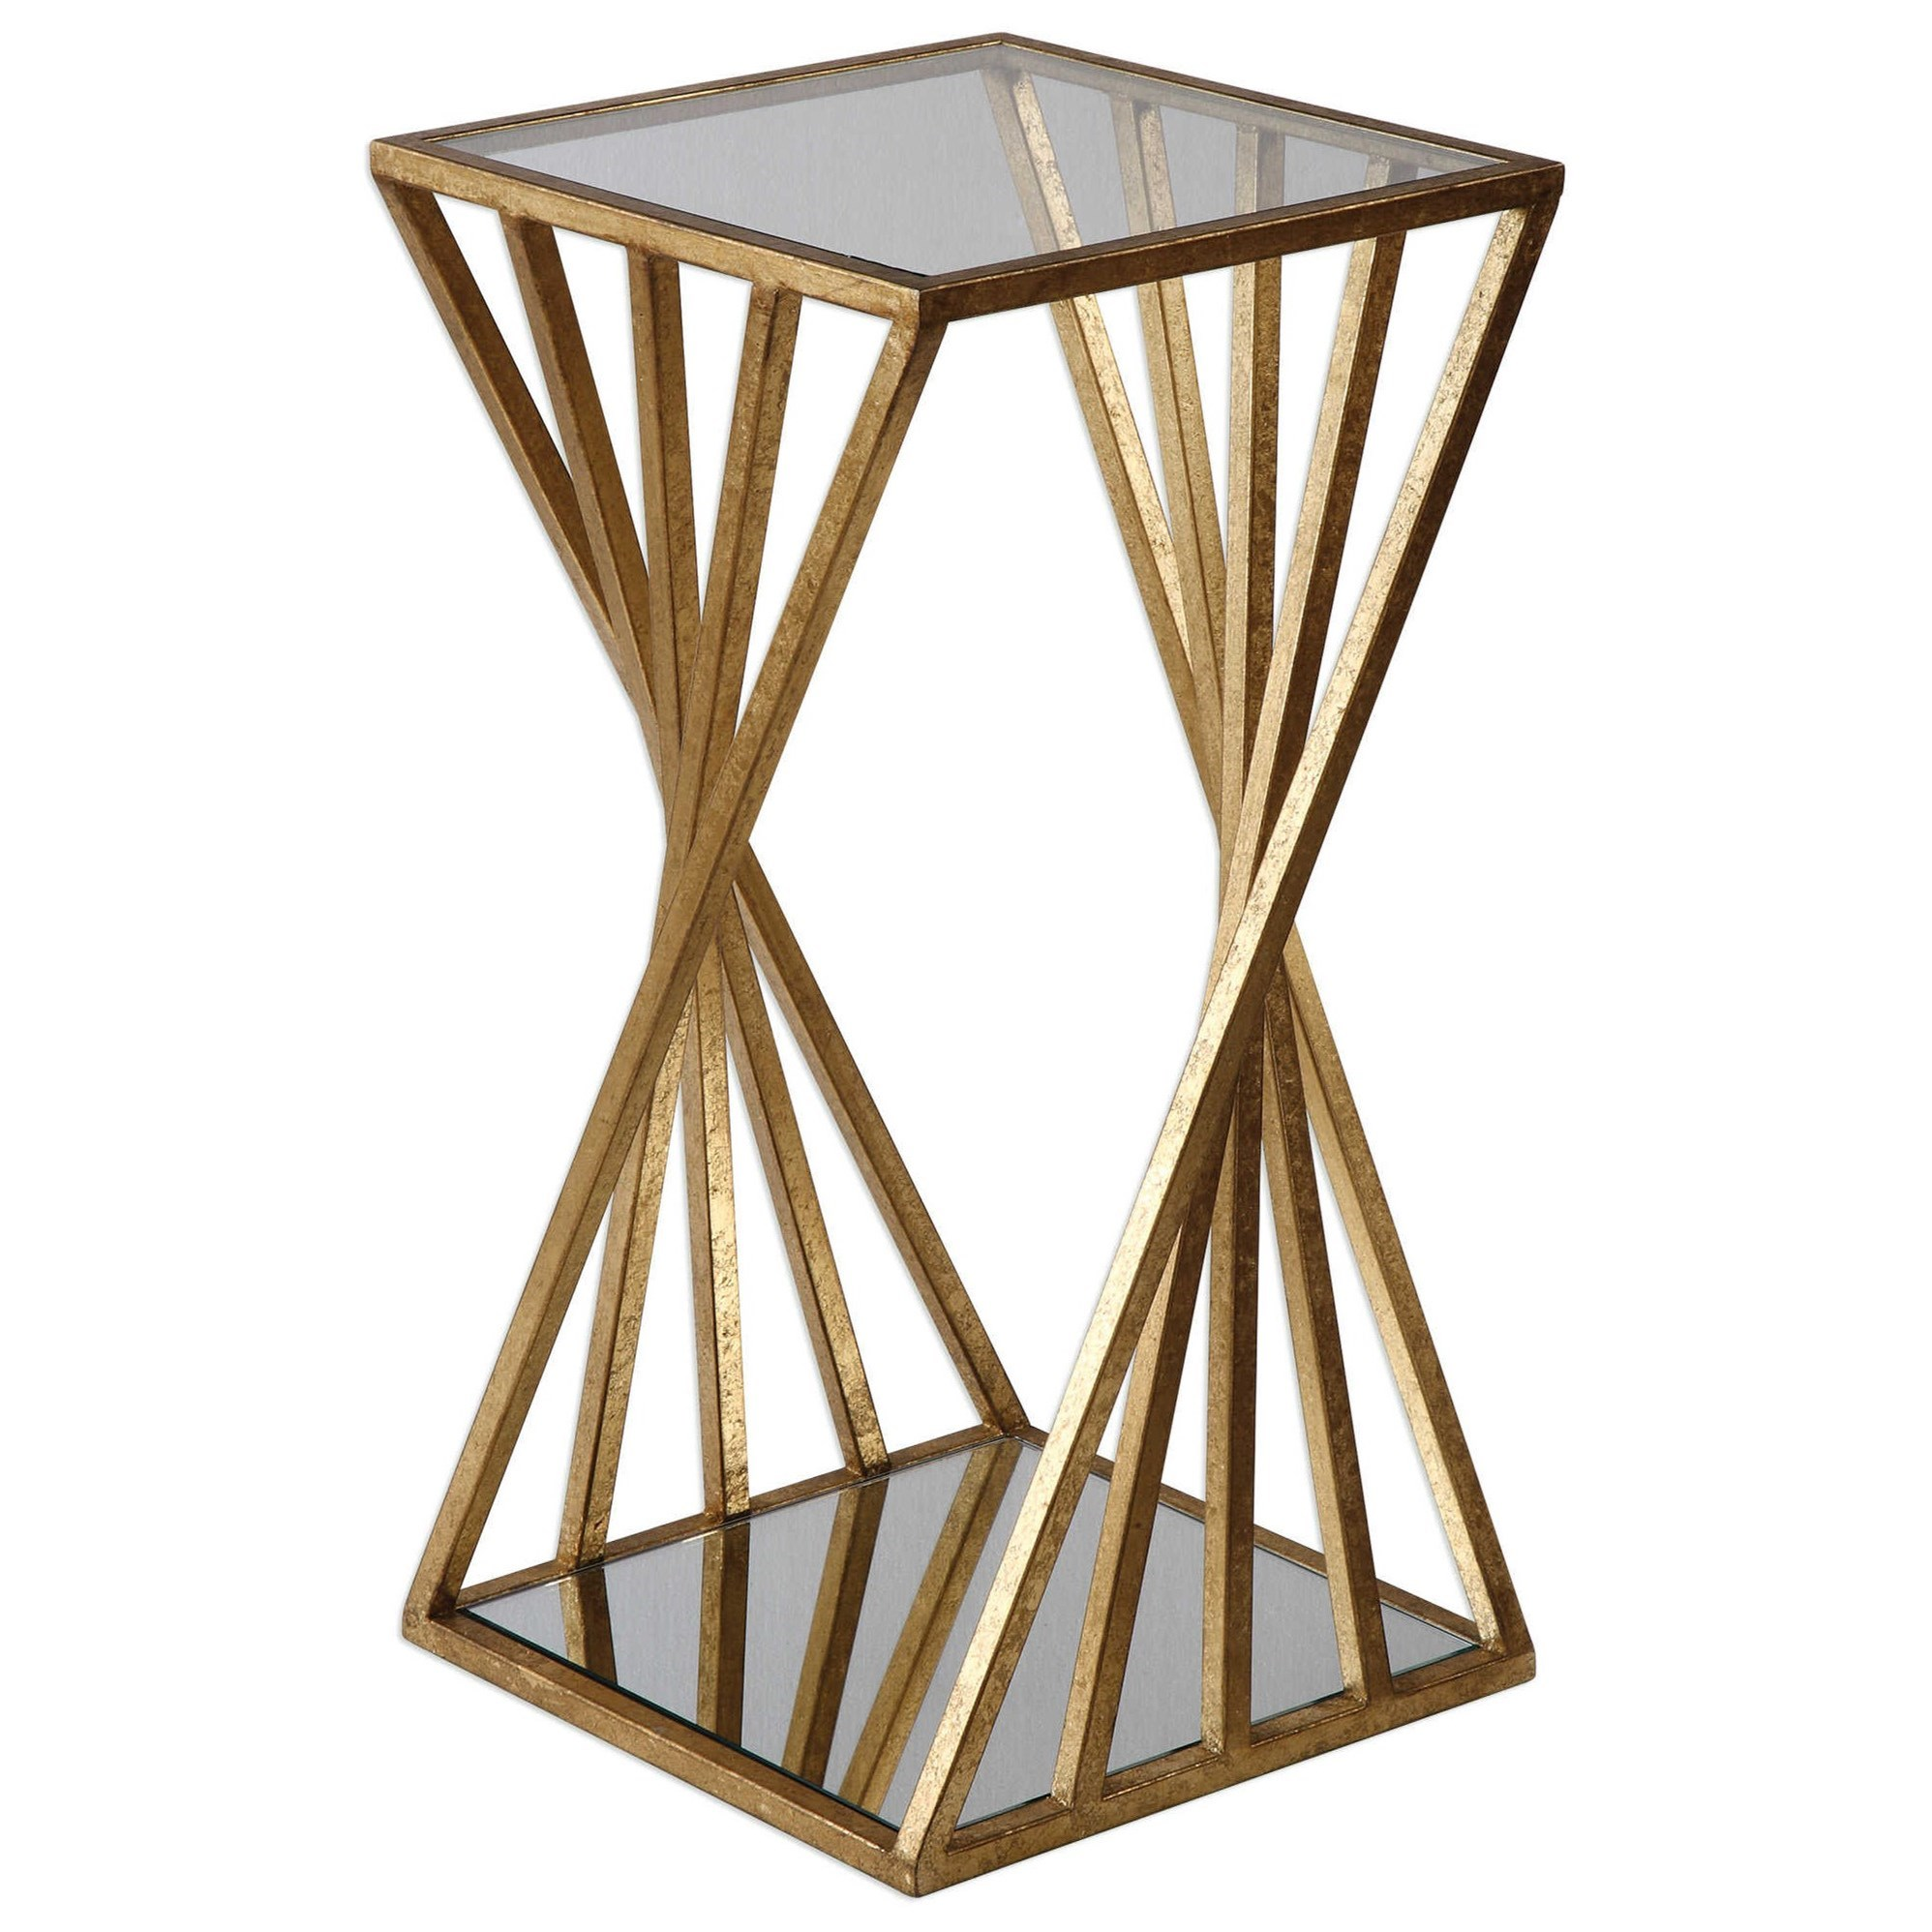 accent furniture occasional tables janina gold dimensional products uttermost color table with drawer small retro armchair side cabinet unique end target white bedside home wall